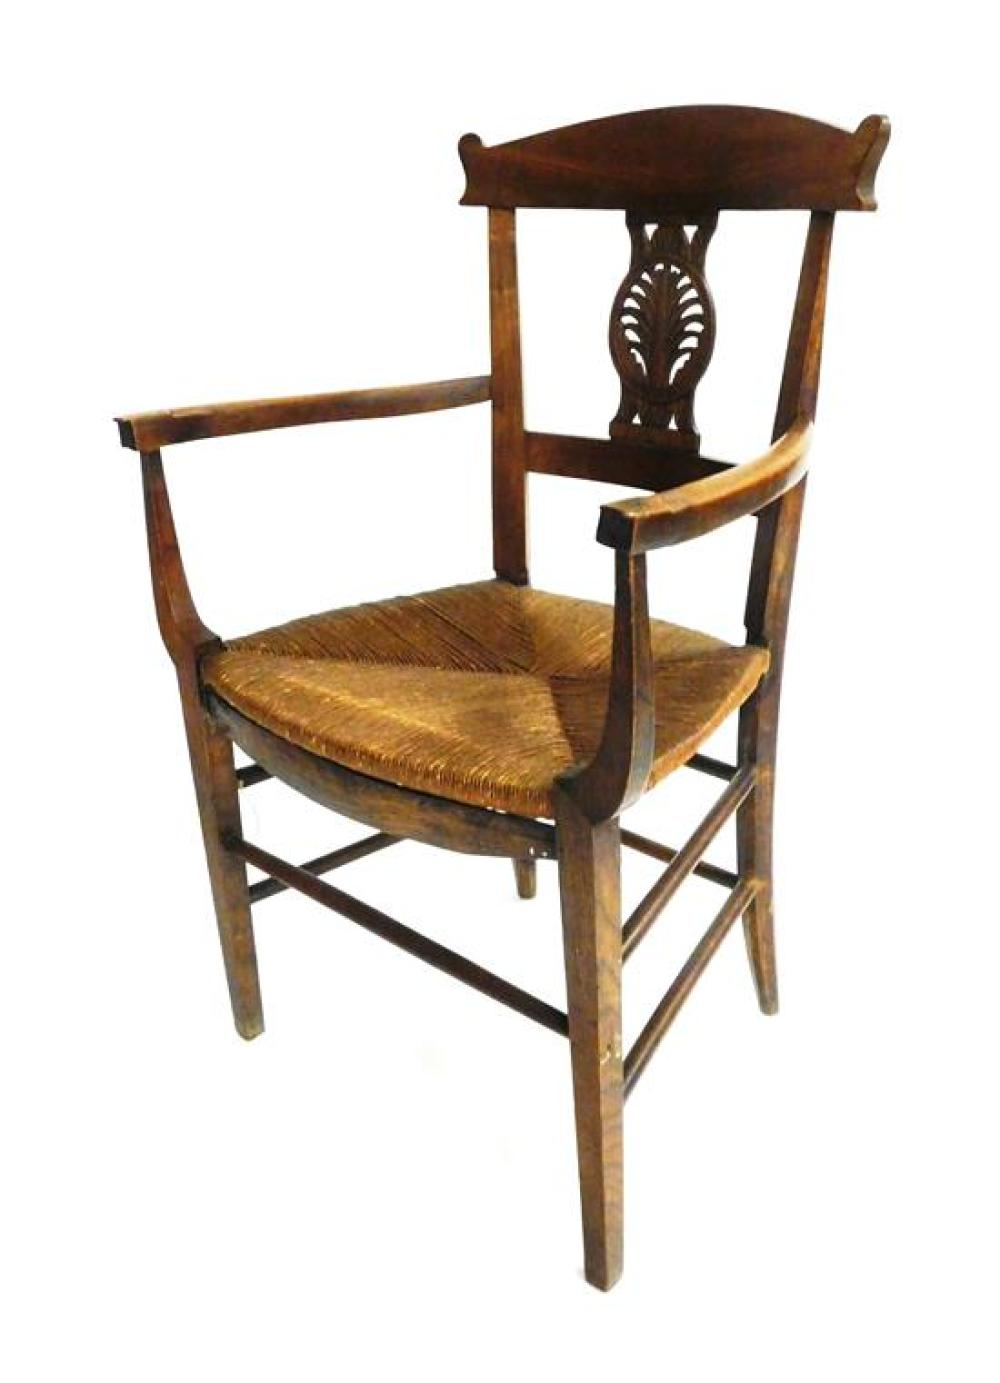 Continental armchair and single drawer stand: Continental armchair with carved foliate splat, 19th C., shaped crest with ears over n...